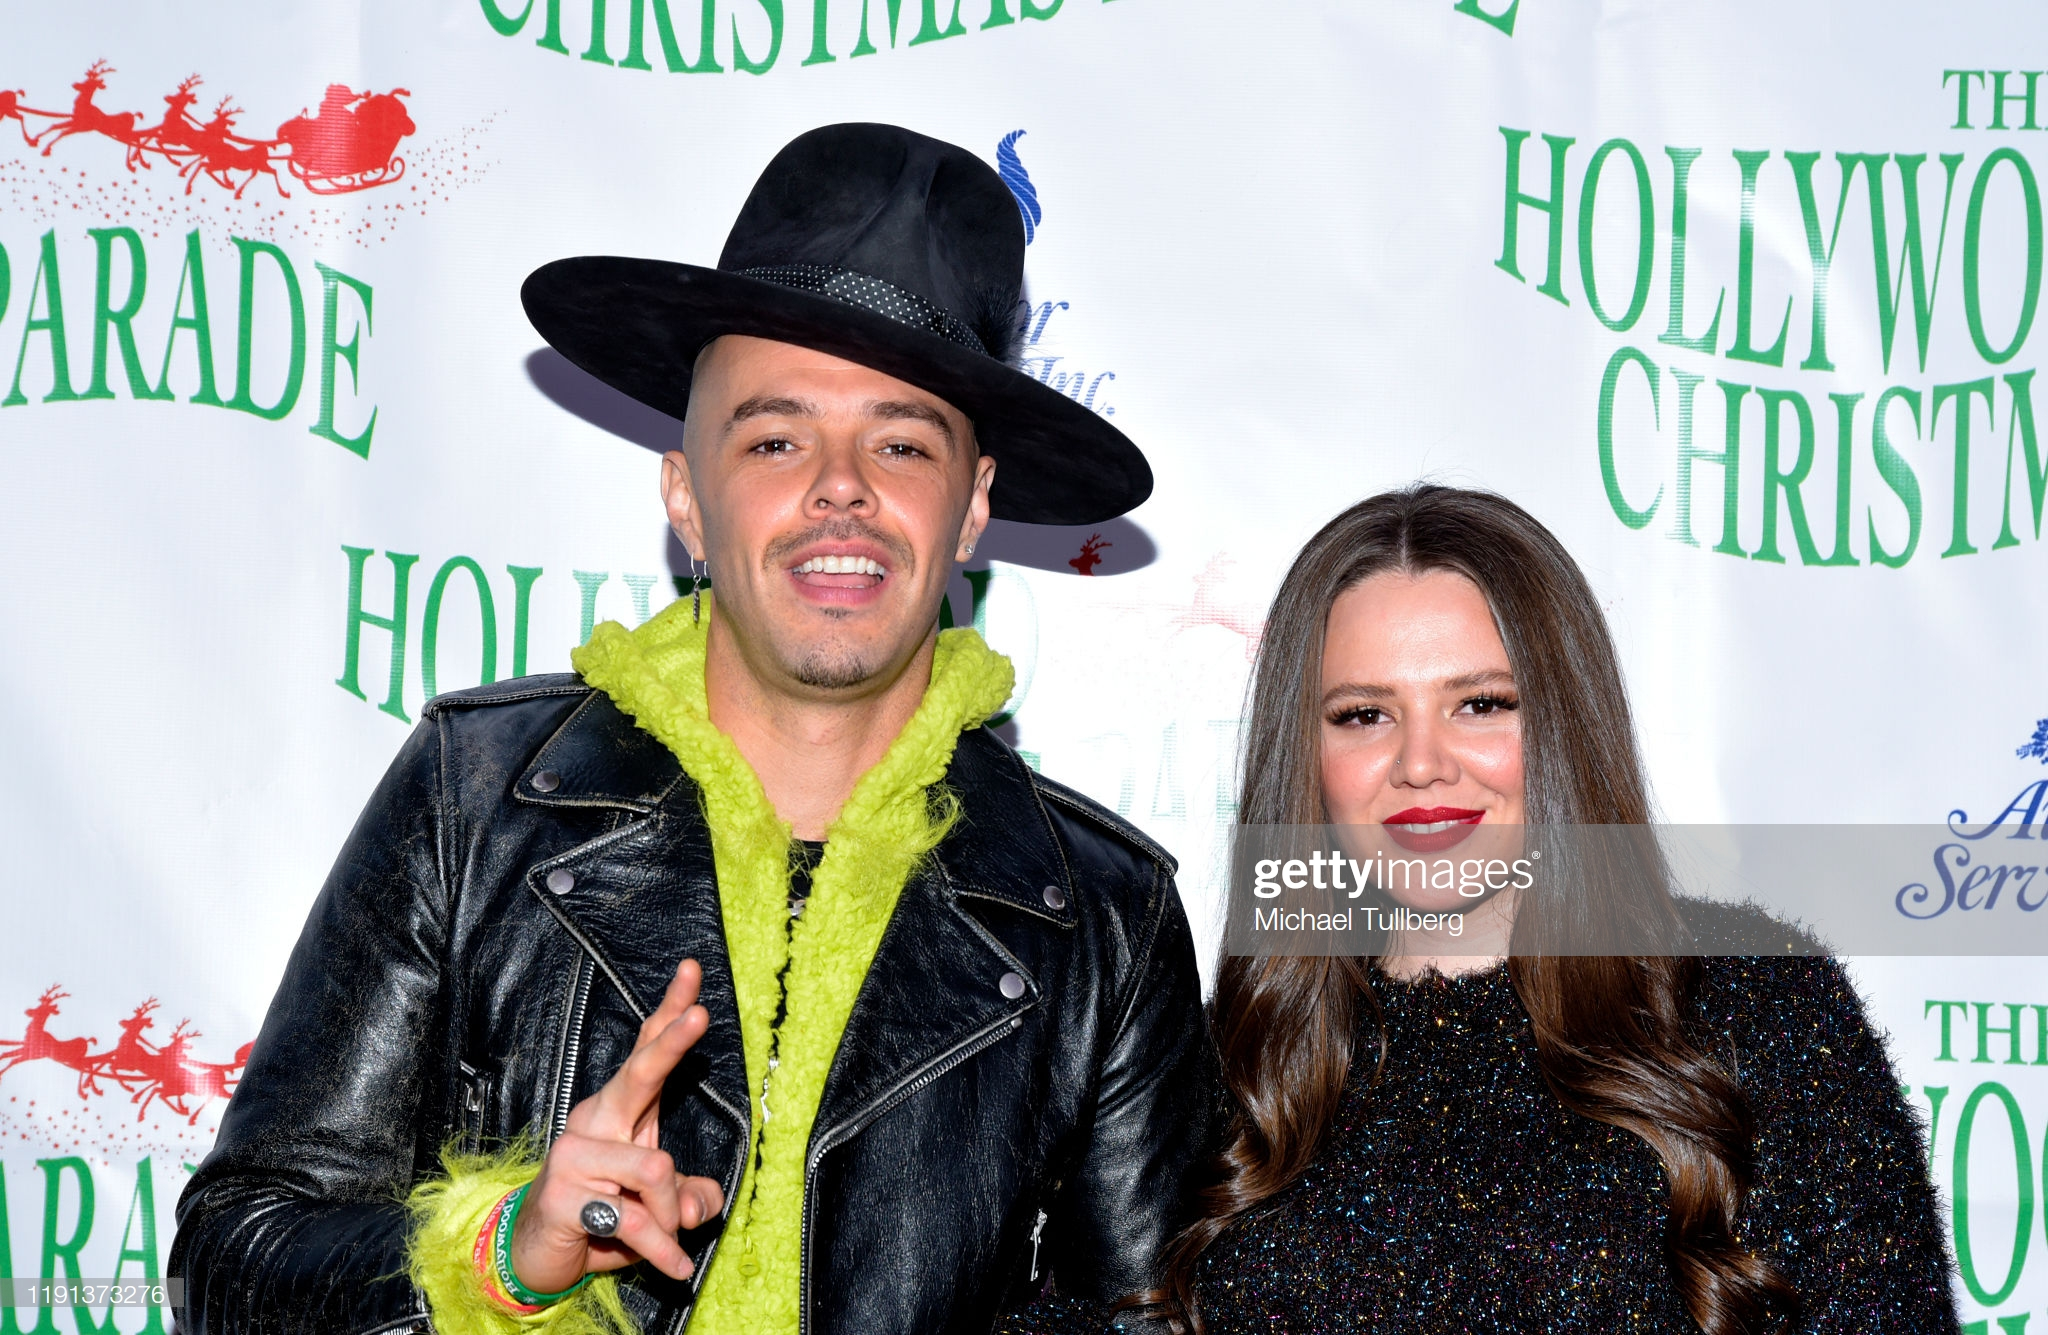 Joy Huerta and Jesse Huerta at an event for 88th Annual Hollywood Christmas Parade (2019)